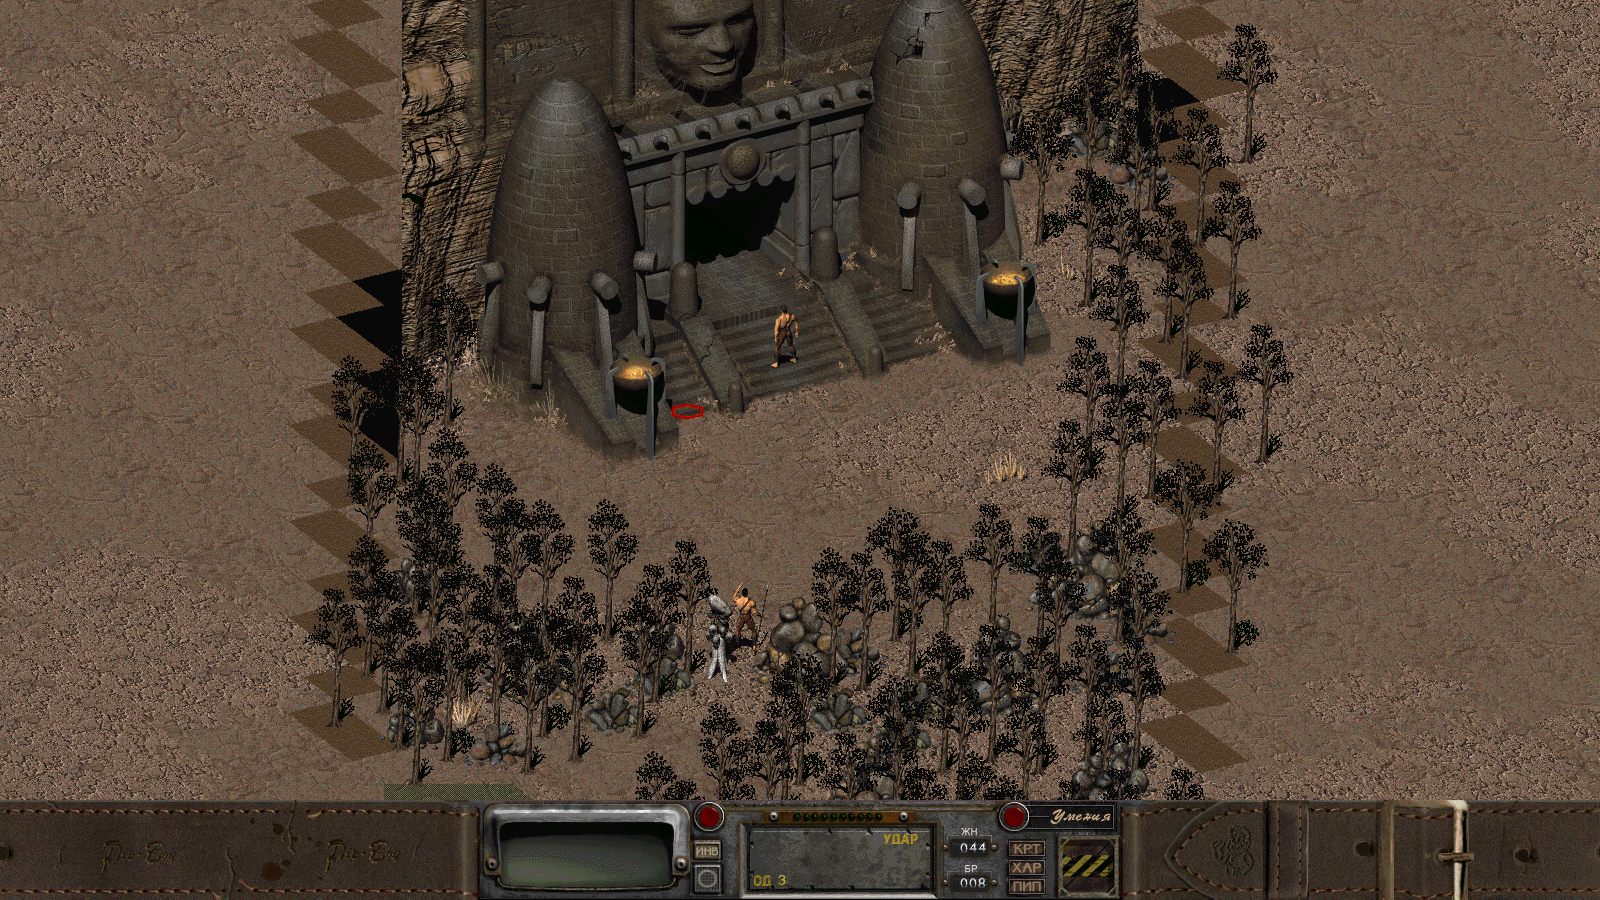 Www.torrentino.com/torrents/714468 - CachedСкачайте игры Fallout 2